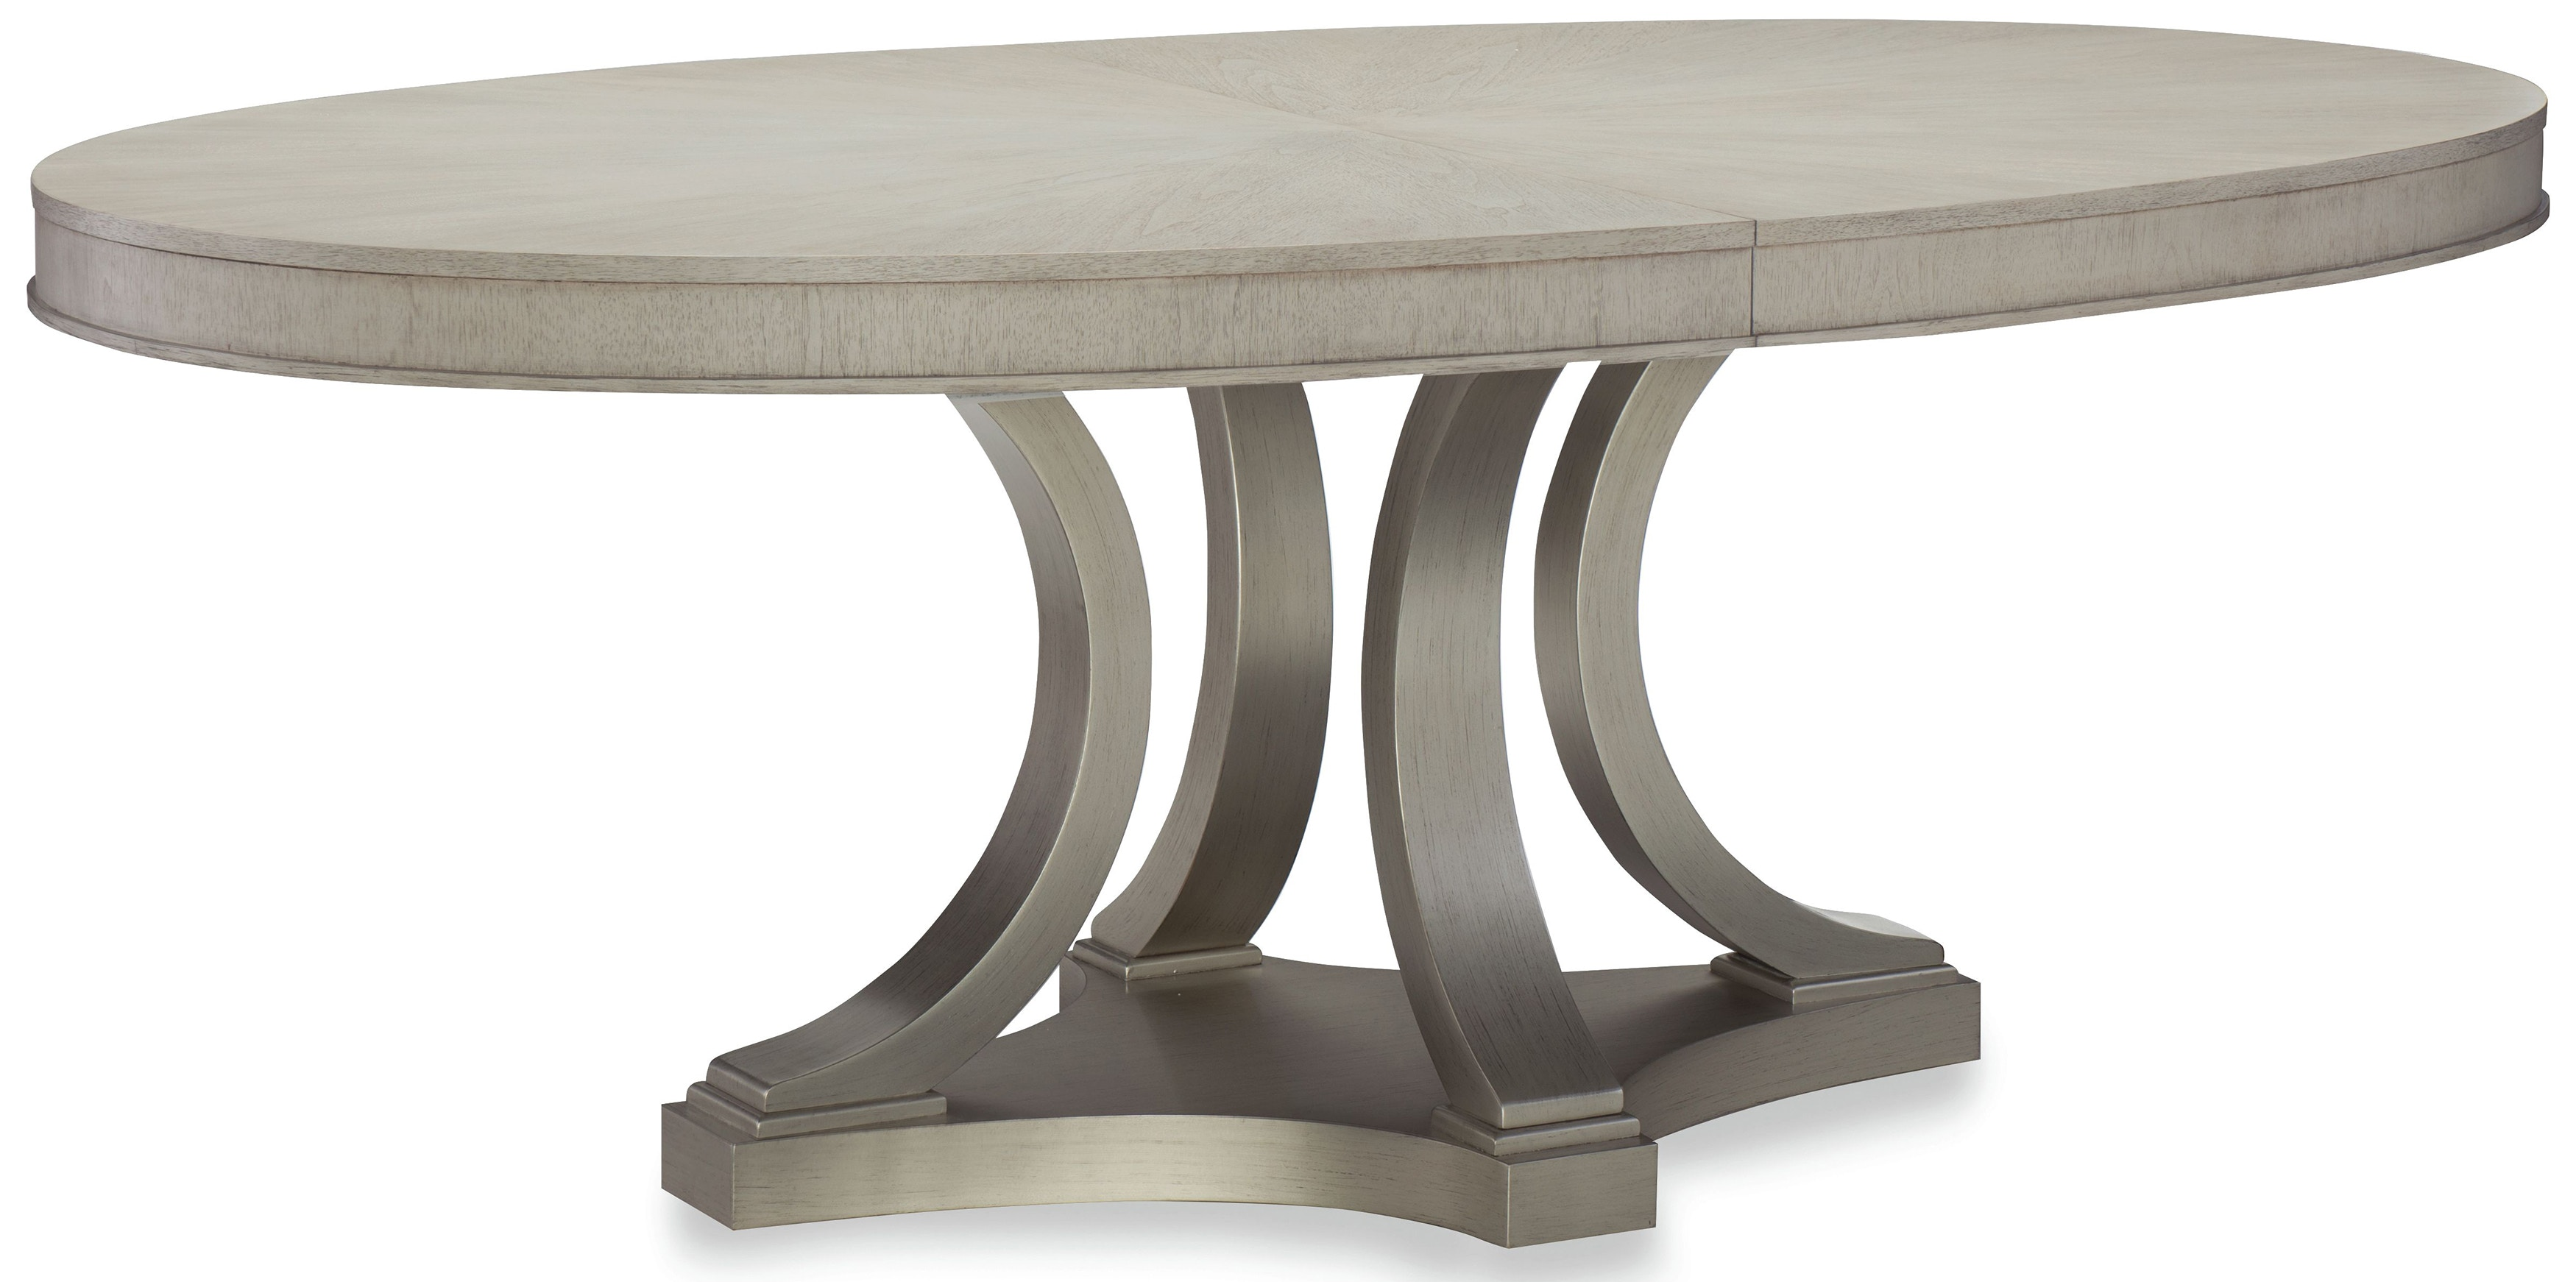 Incroyable Rachael Ray Cinema Oval Pedestal Dining Table KT:78857